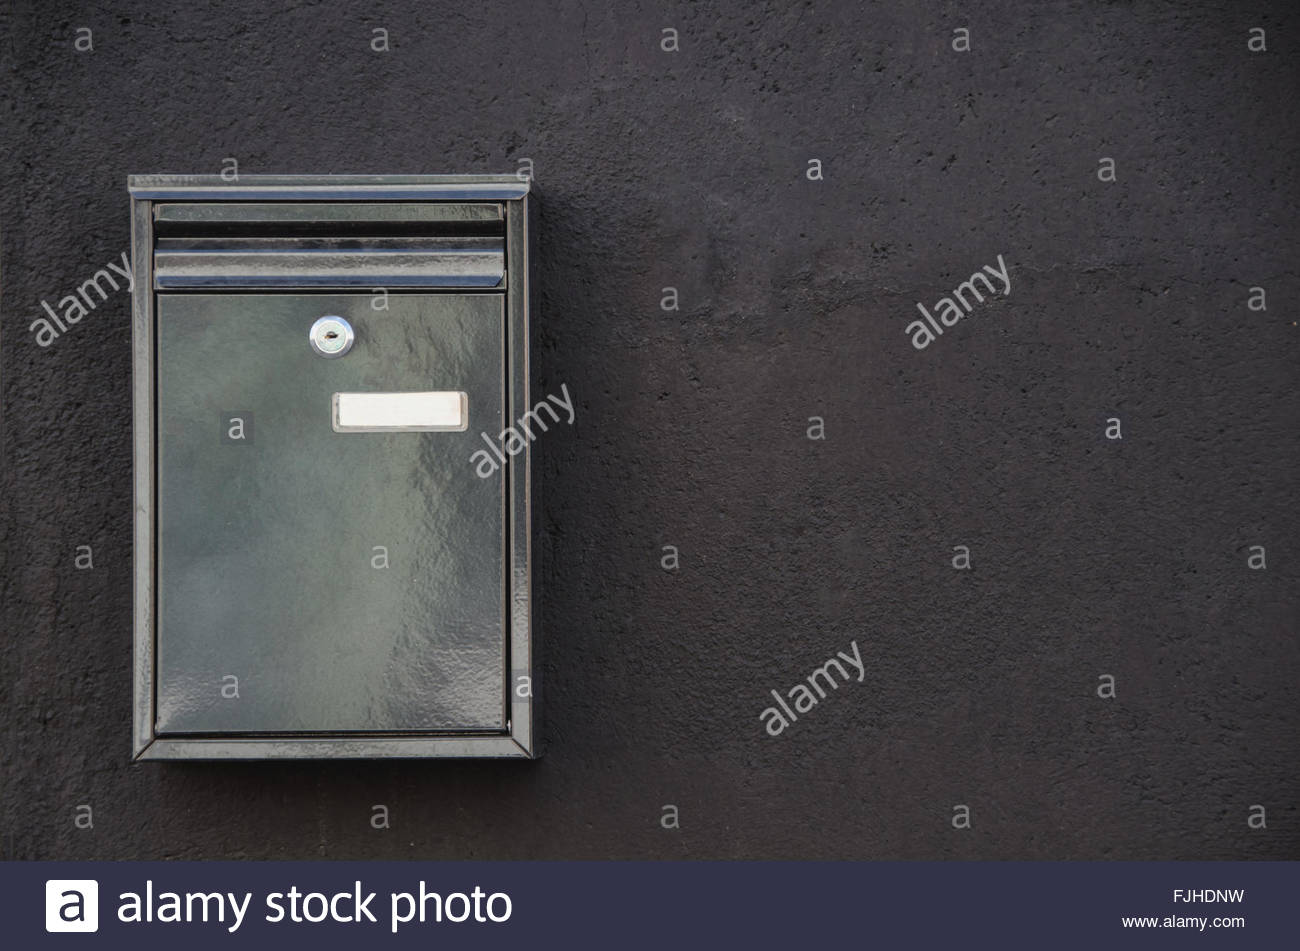 Close Up Of Metal Mailbox Hanging On Black Cement Wall With Keyhole